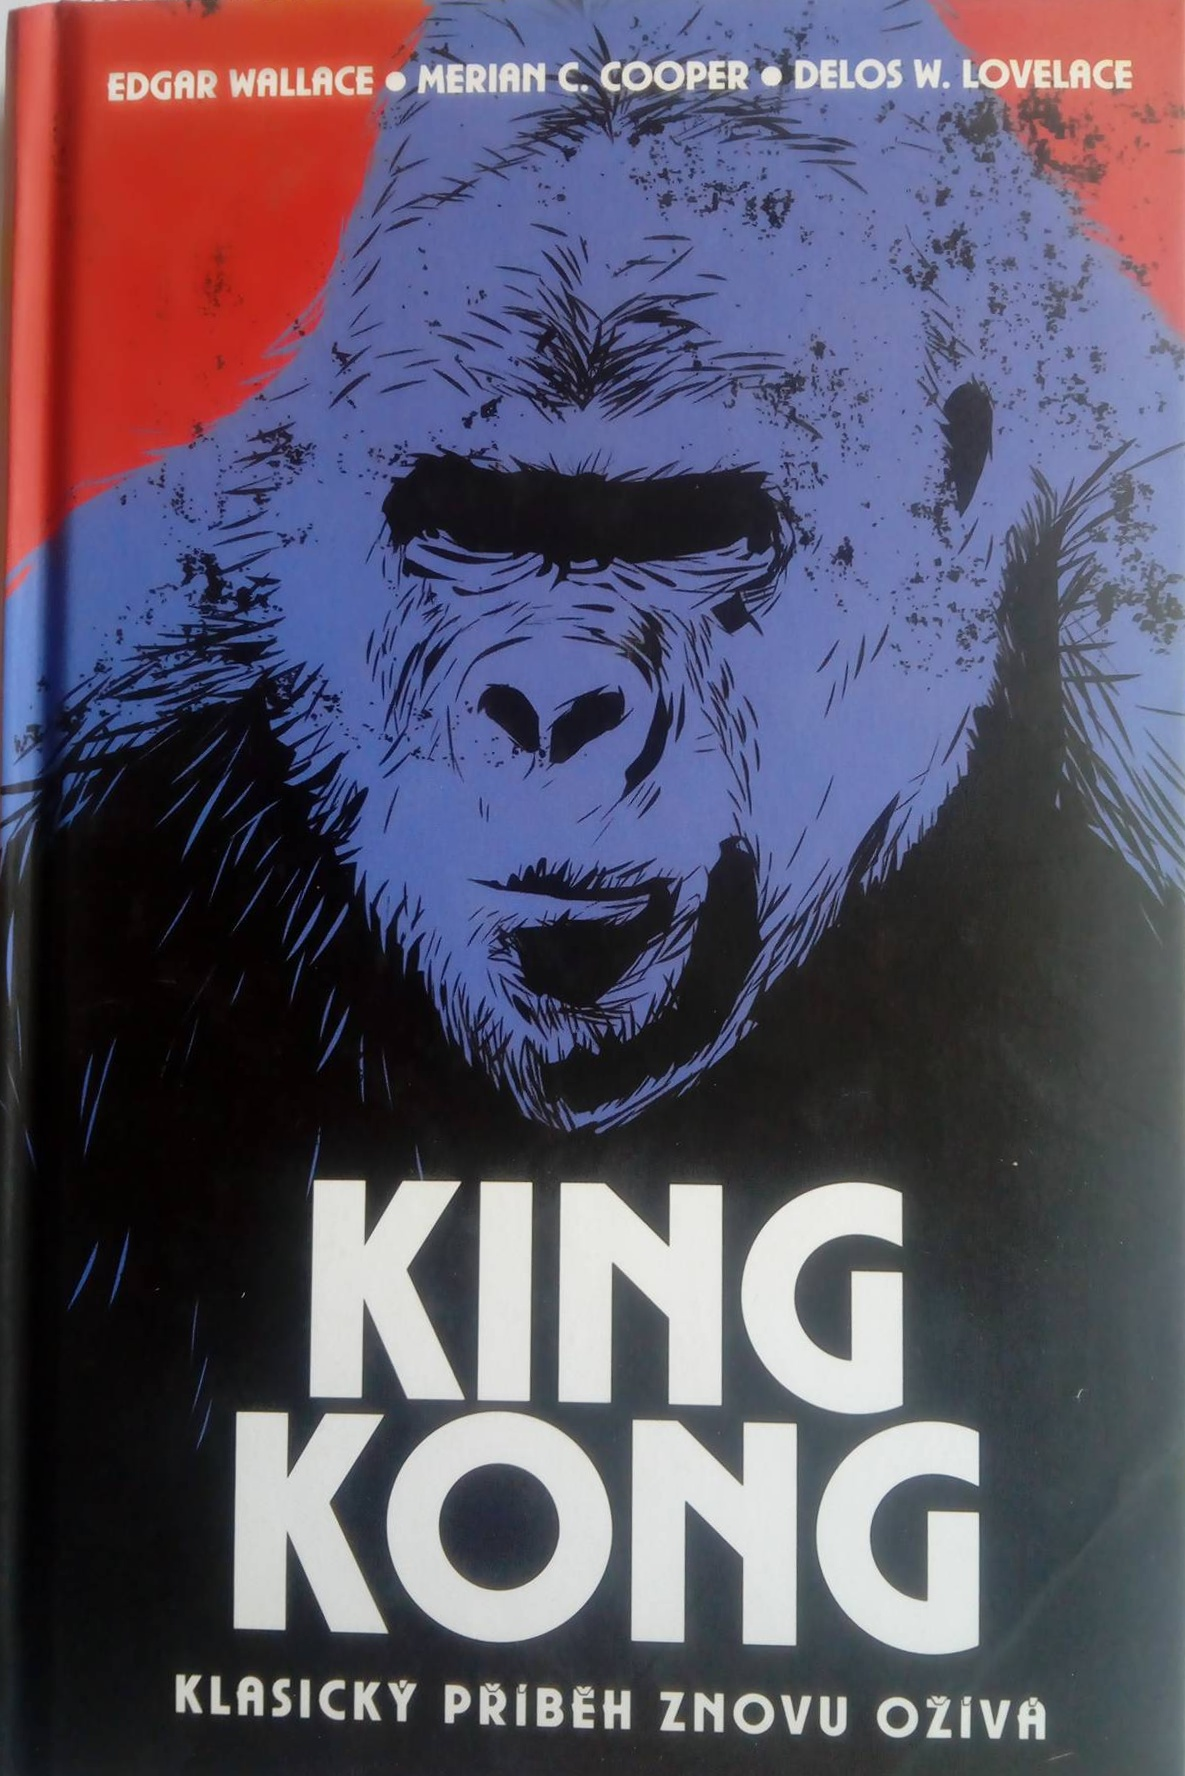 King Kong - E.Wallace, M.C. Cooper, D.W.Lovelace